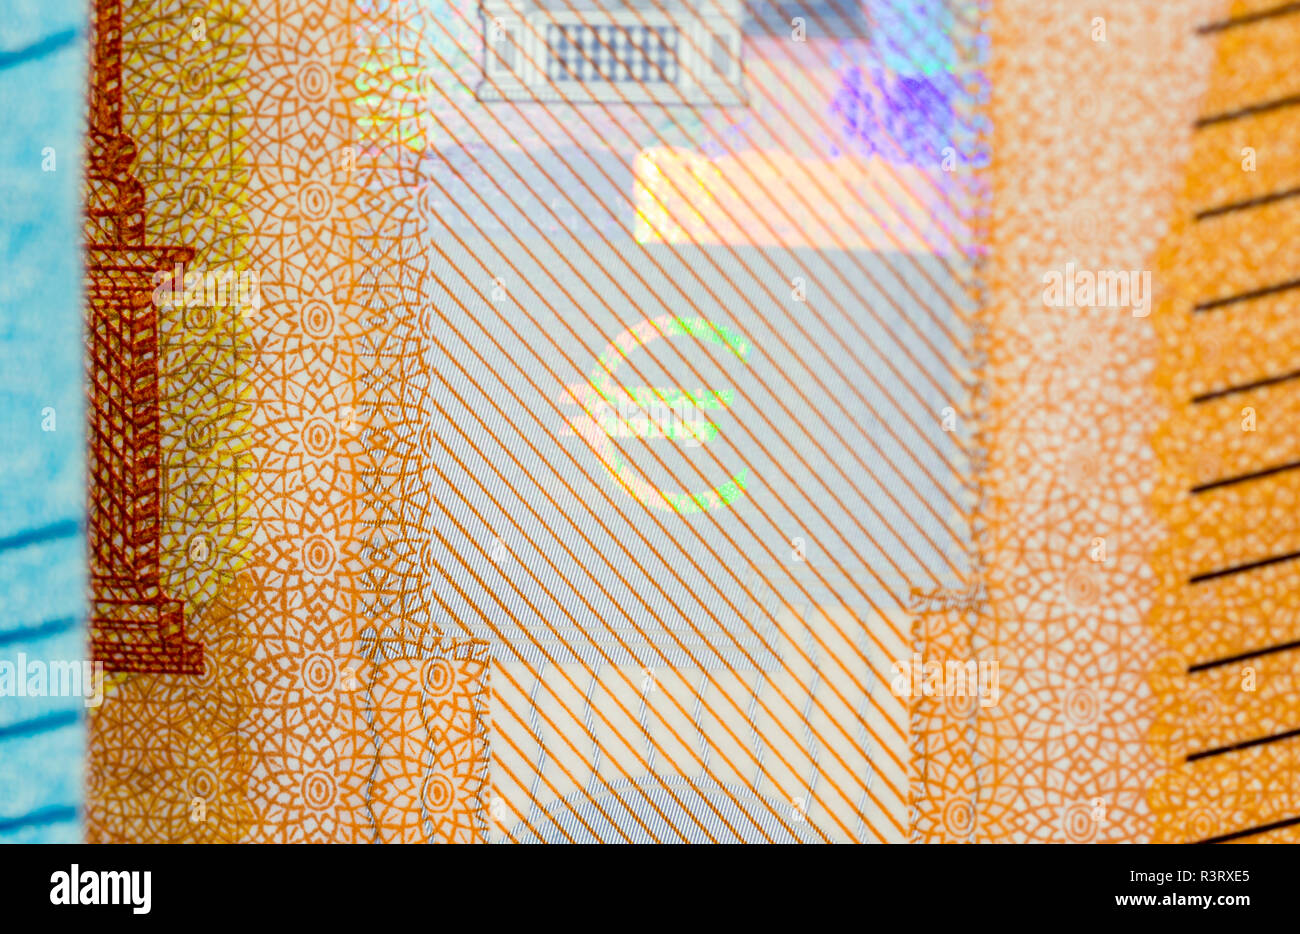 Close-up of the euro symbol on the hologram a new fifty euro banknote. - Stock Image